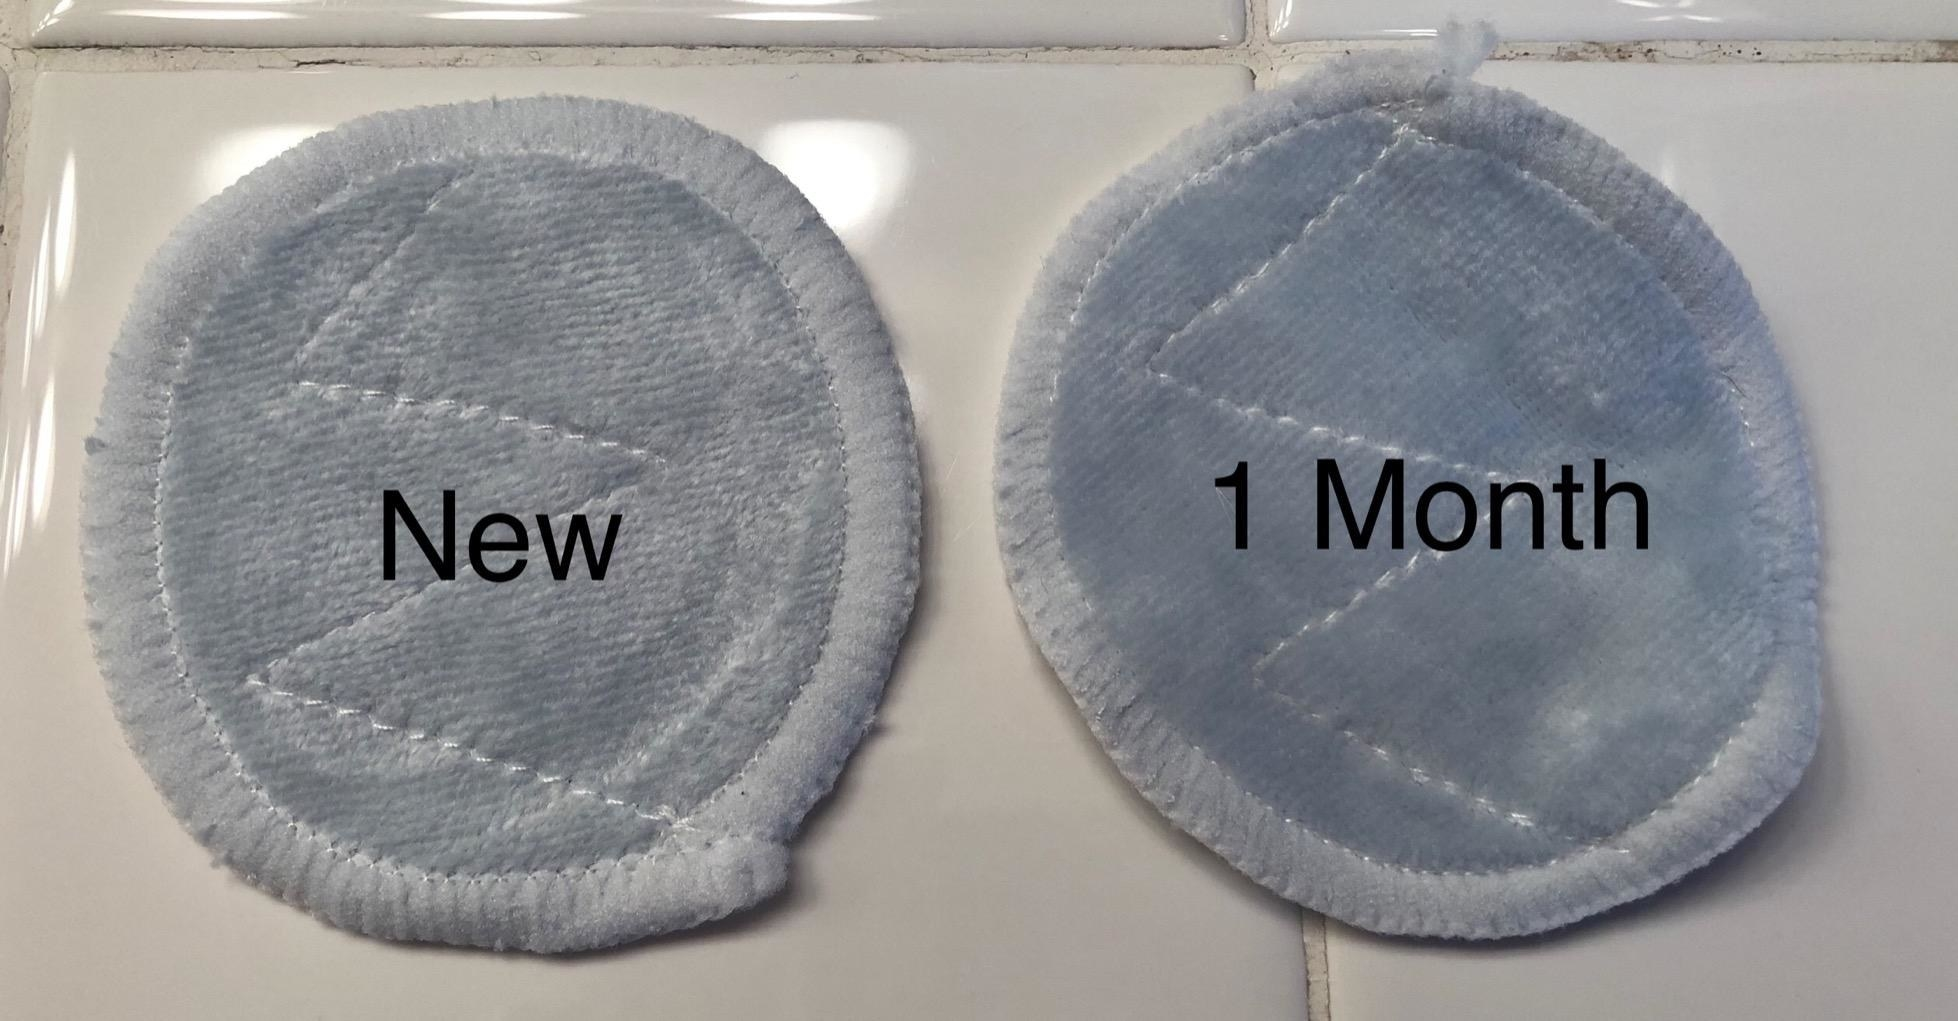 the cleansing cloth as it is new, and a second one beside it showing that it still looks smooth and useable even after one month's use